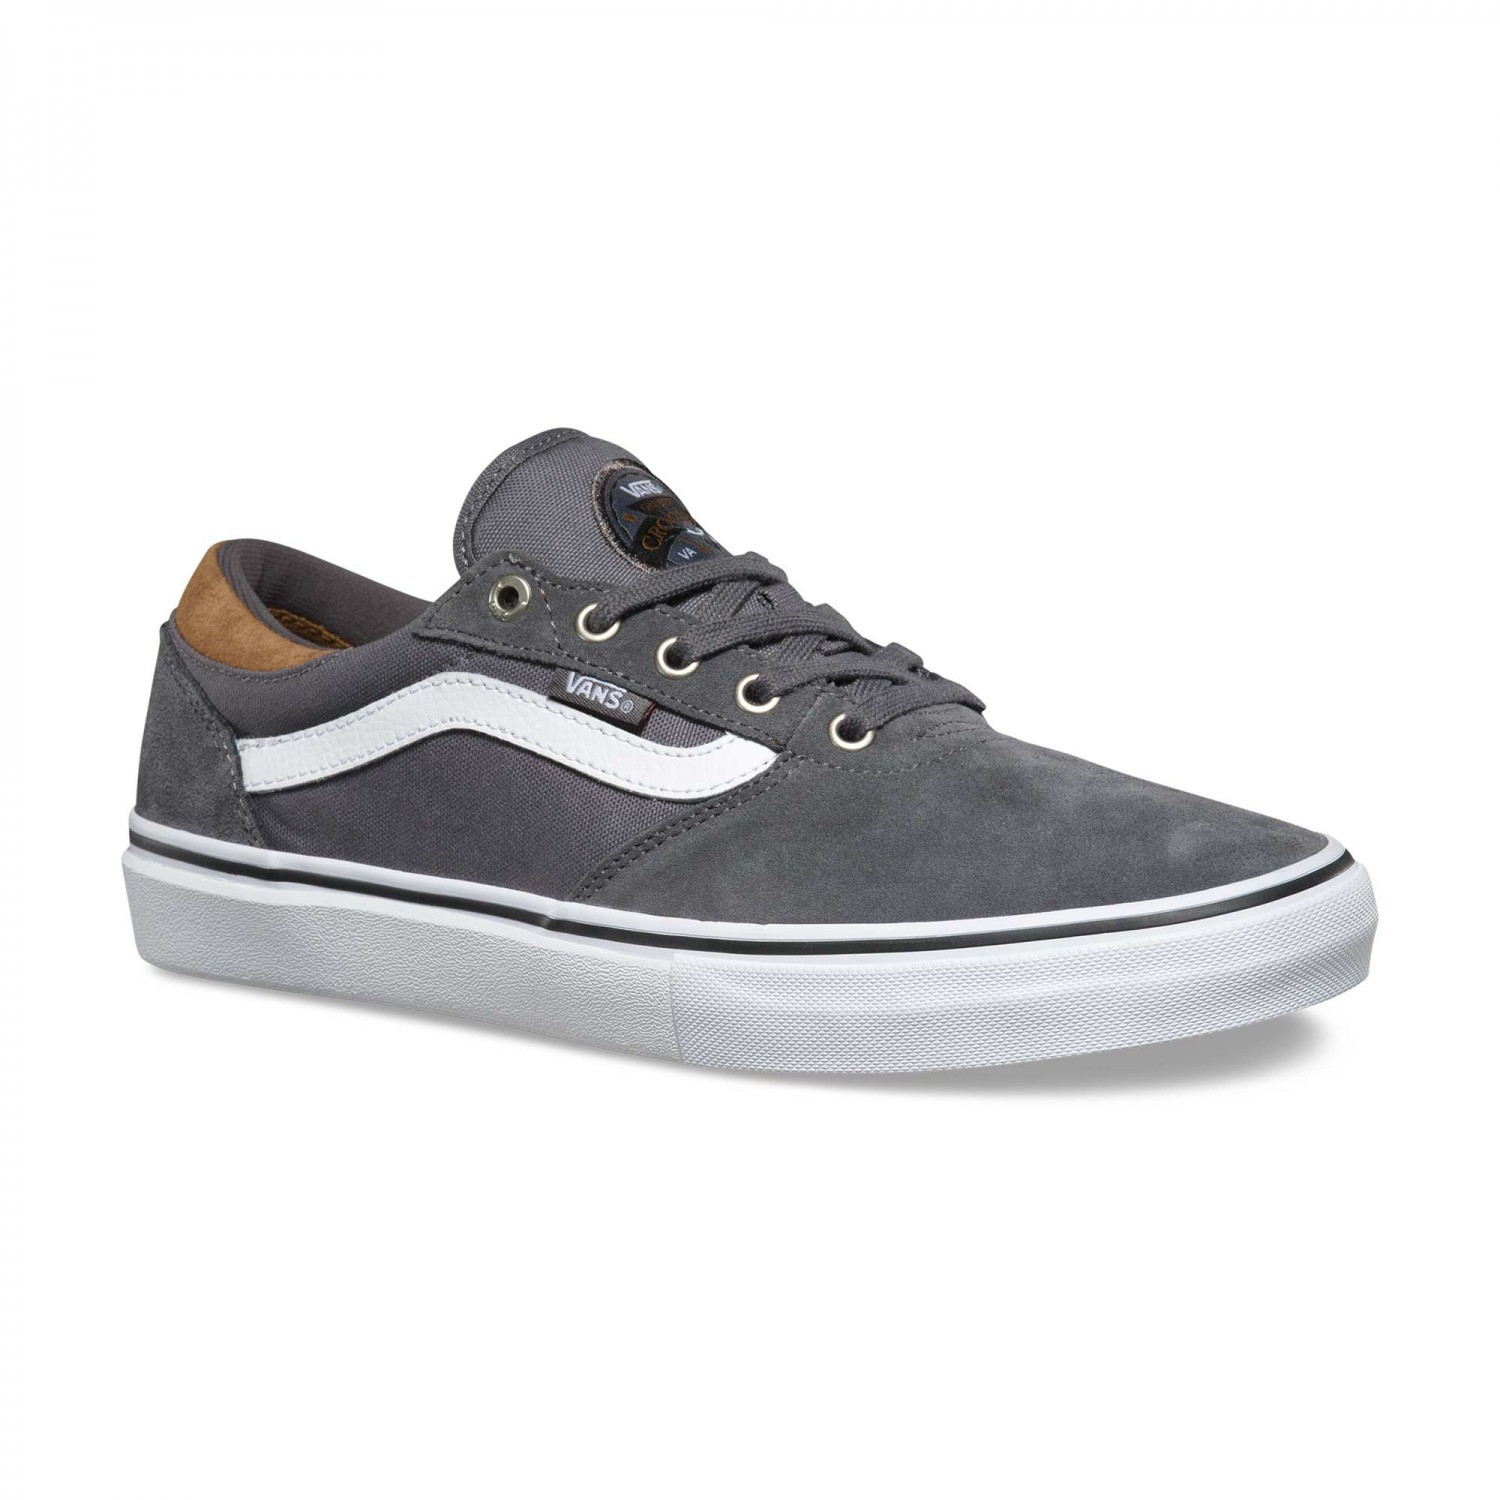 Alta qualit Vans Gilbert Crockett Tornado White vendita